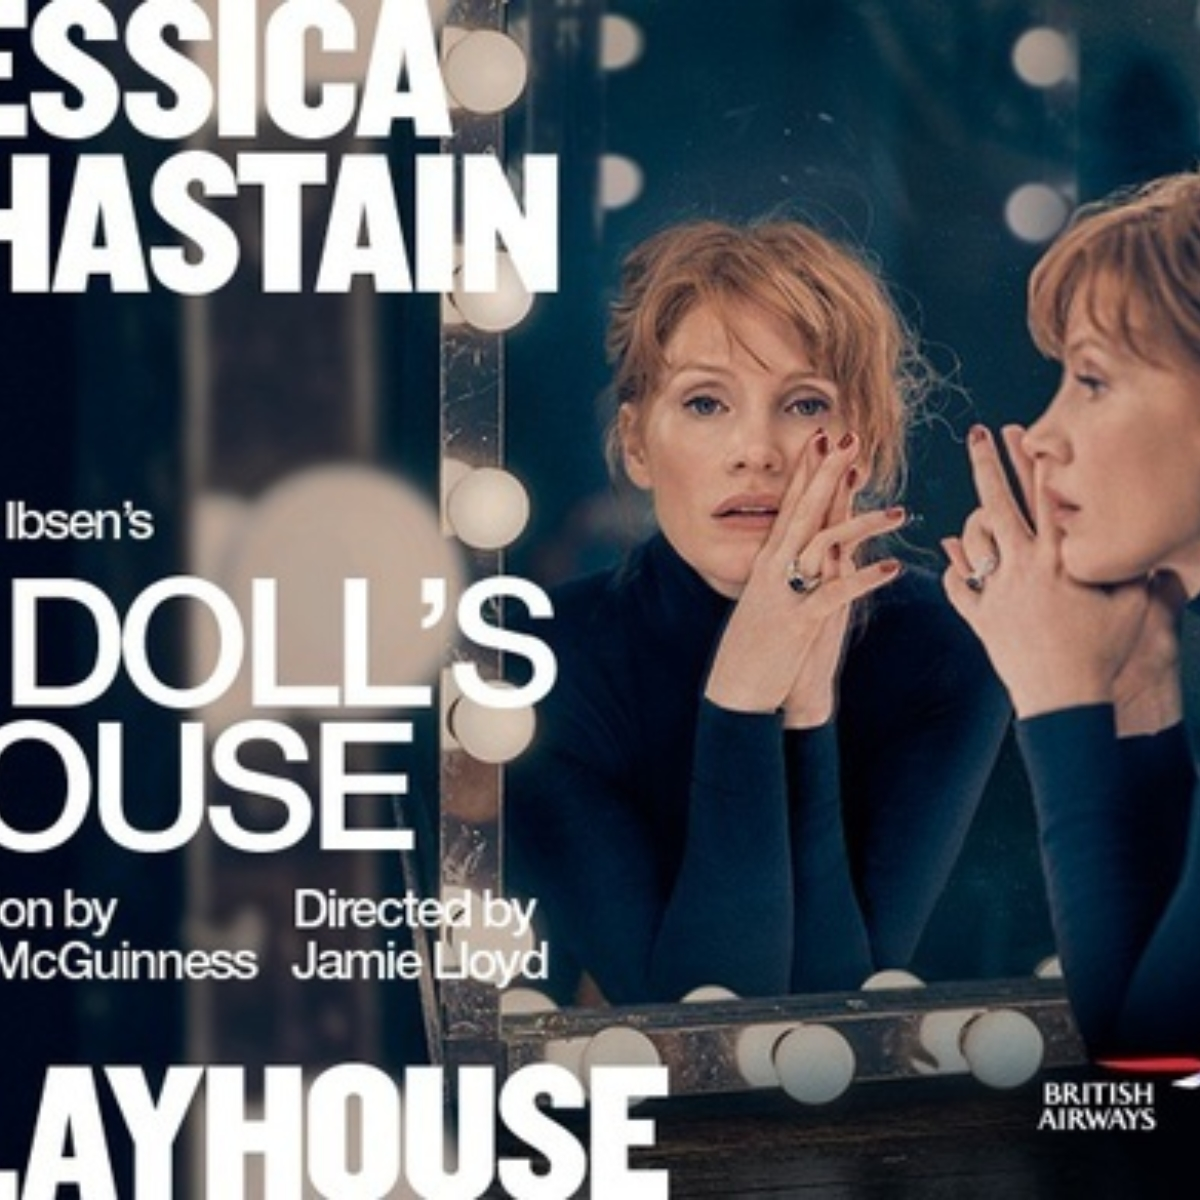 Henrik Ibsen's A Doll's House Images